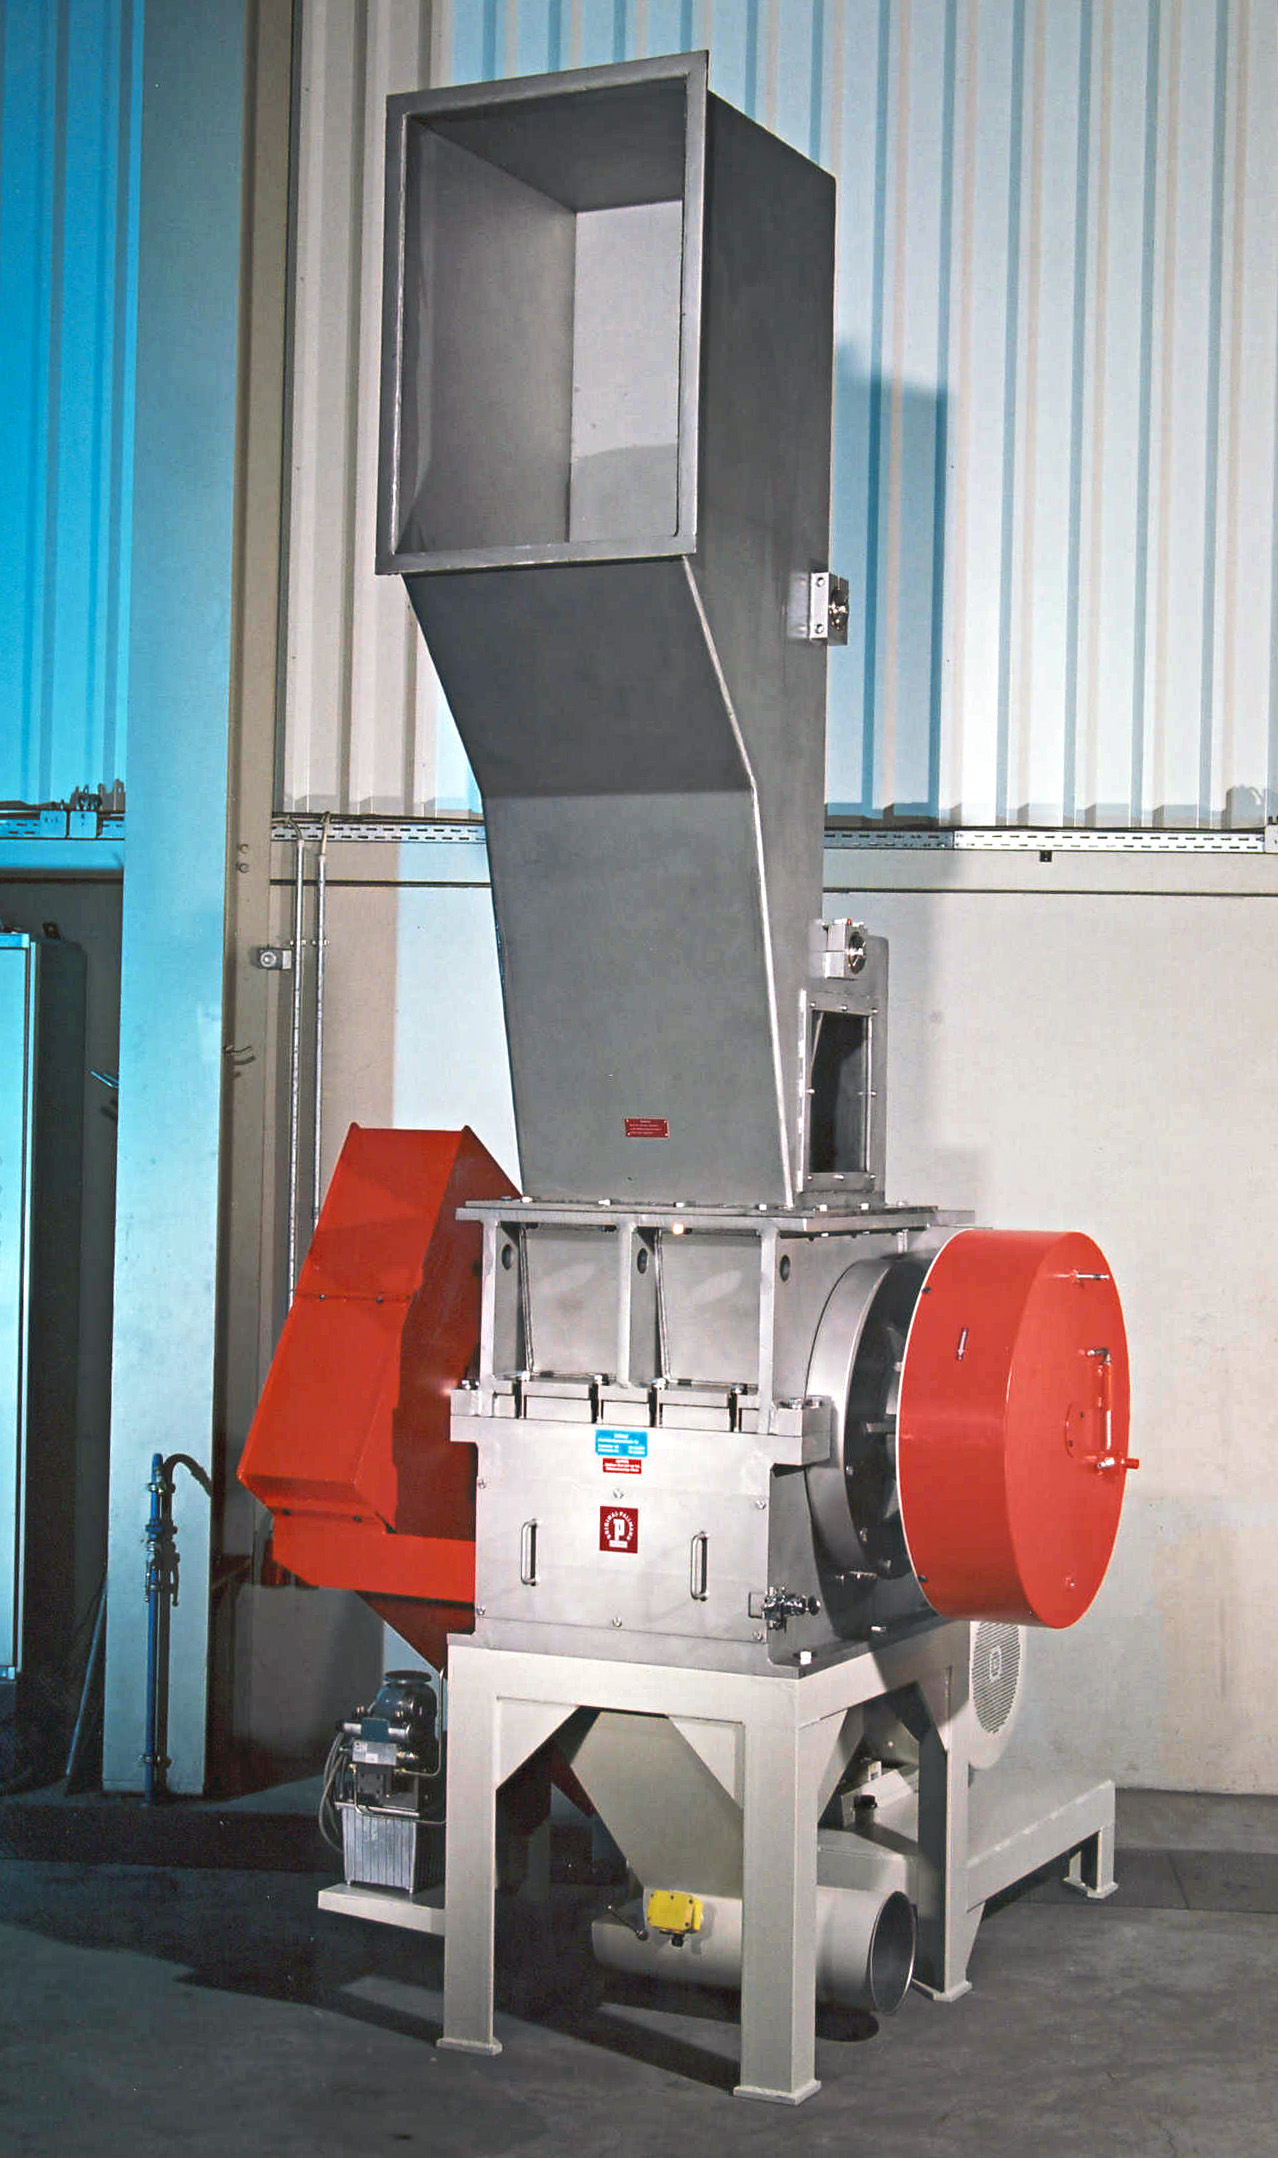 Knife mill for Rubber594a2d3be8b066.38189089.jpg